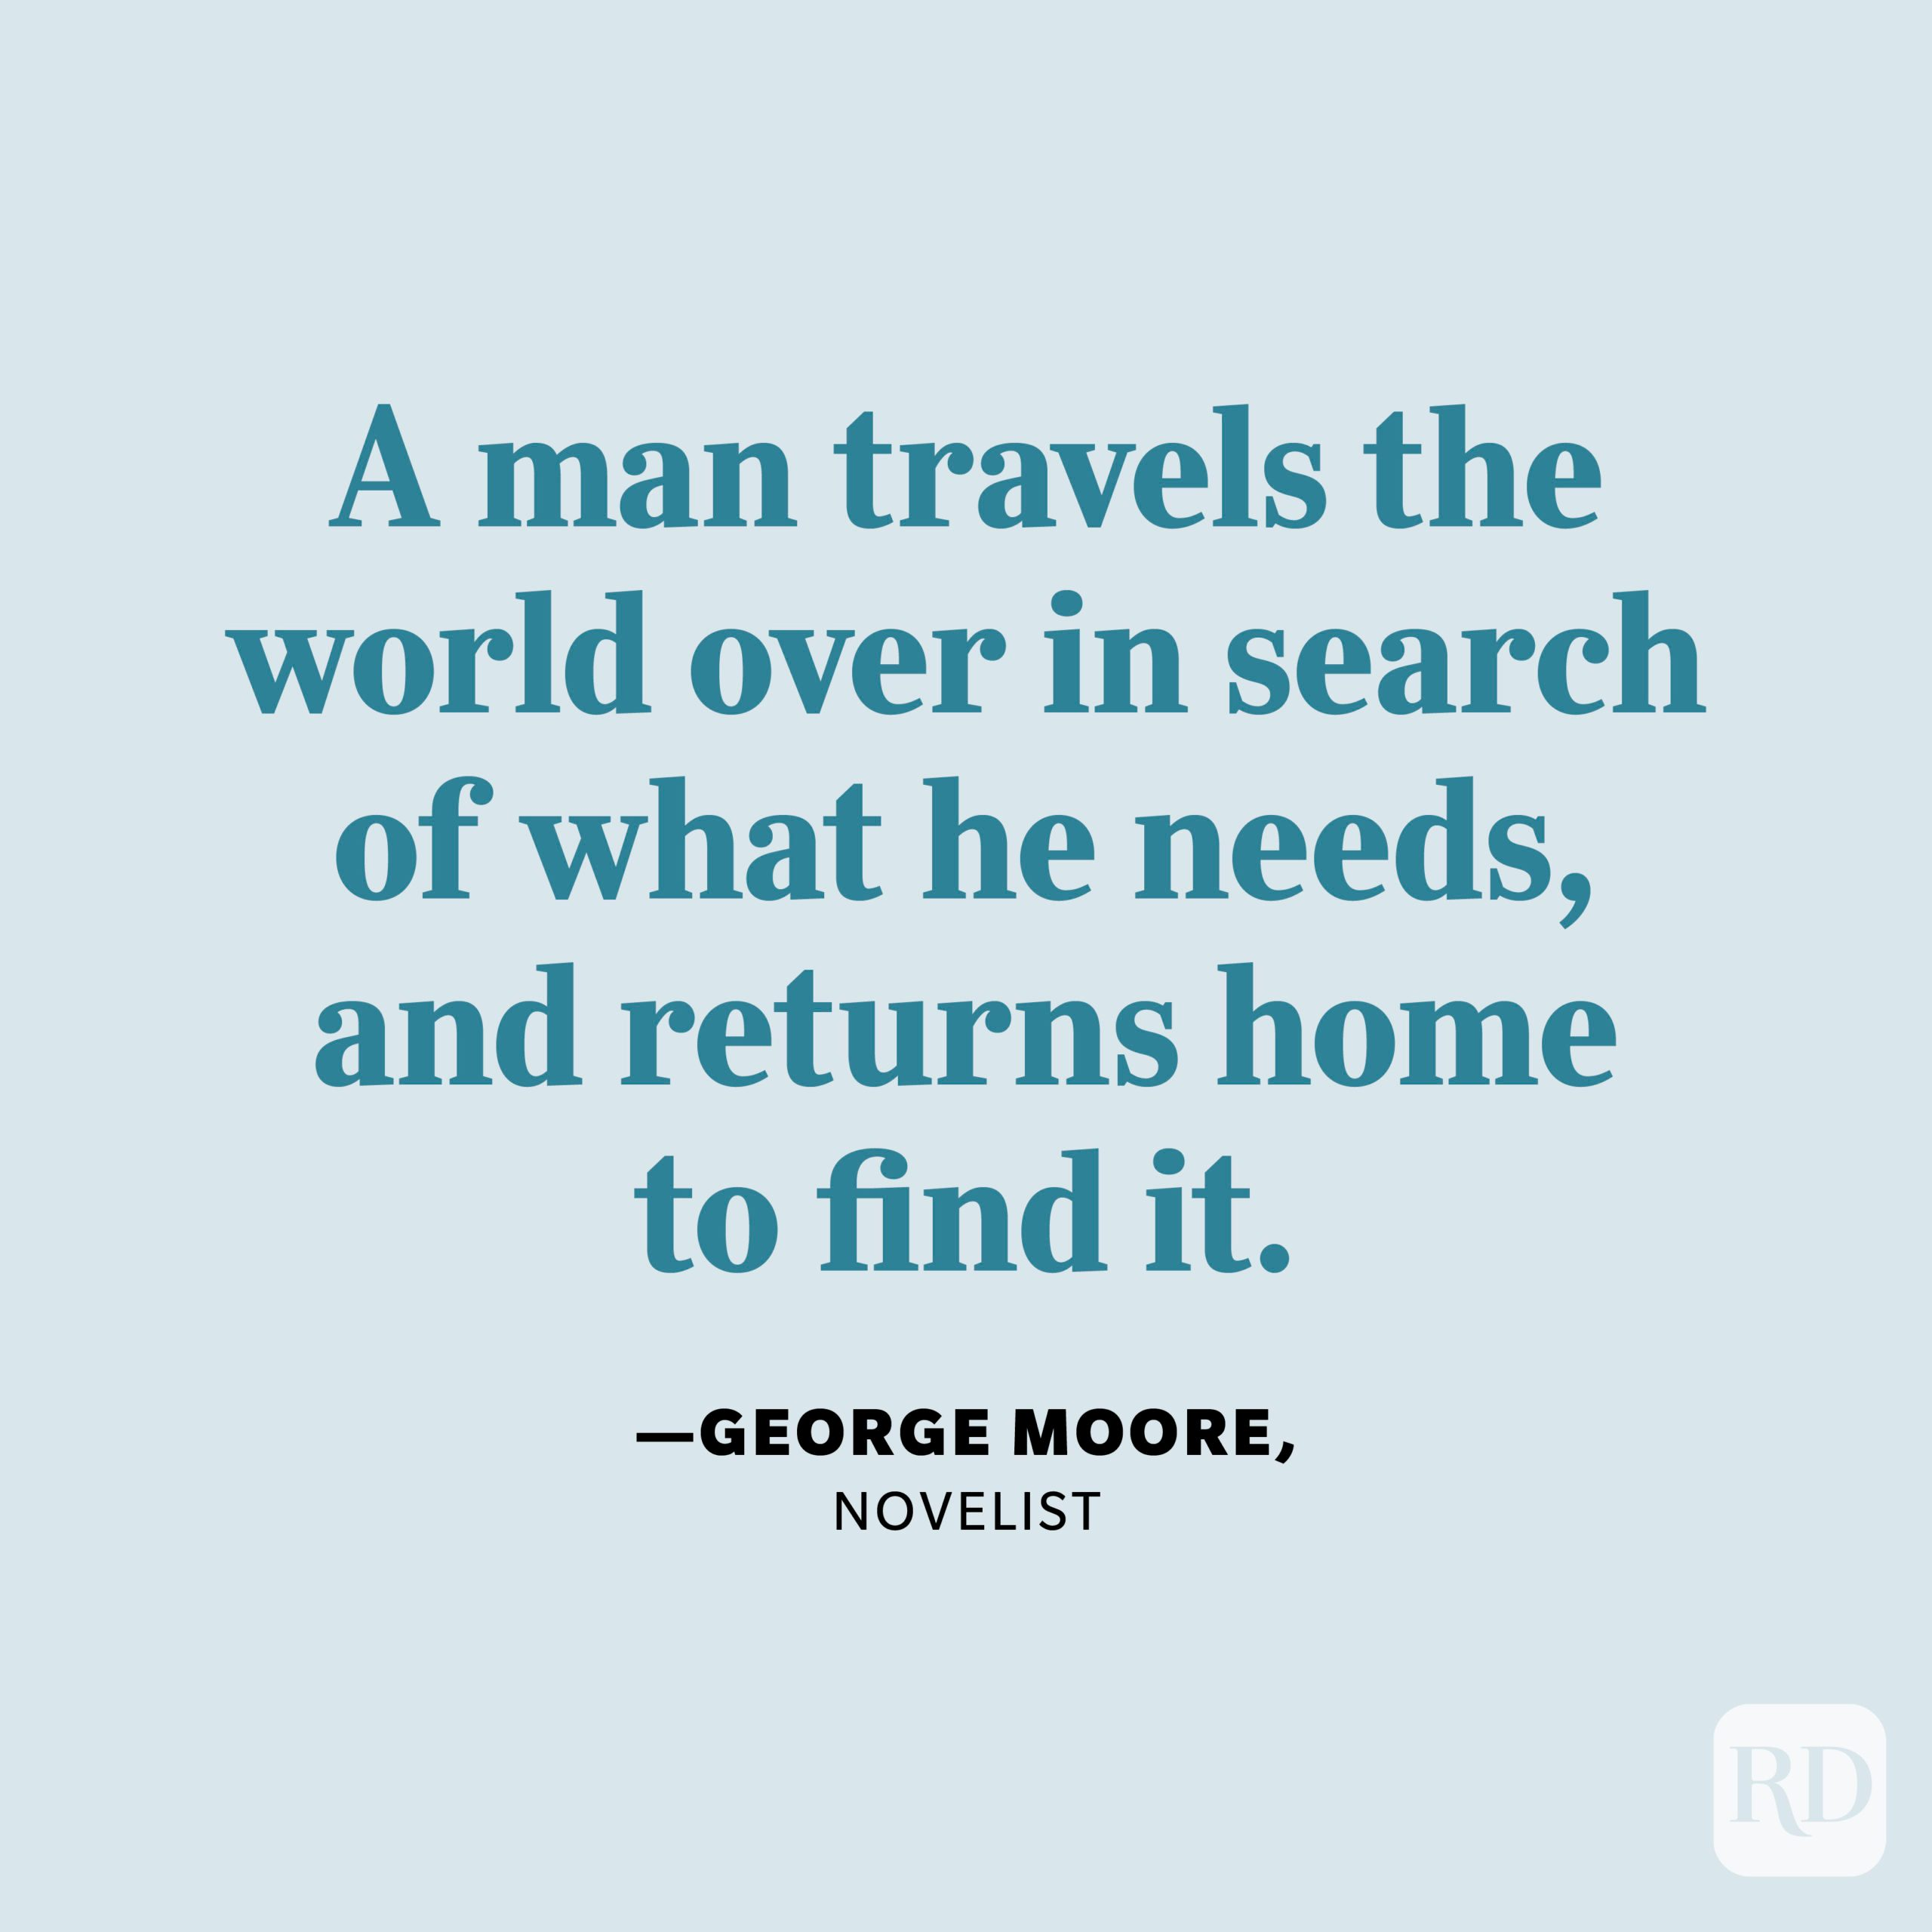 """""""A man travels the world over in search of what he needs, and returns home to find it."""" —George Moore, novelist"""